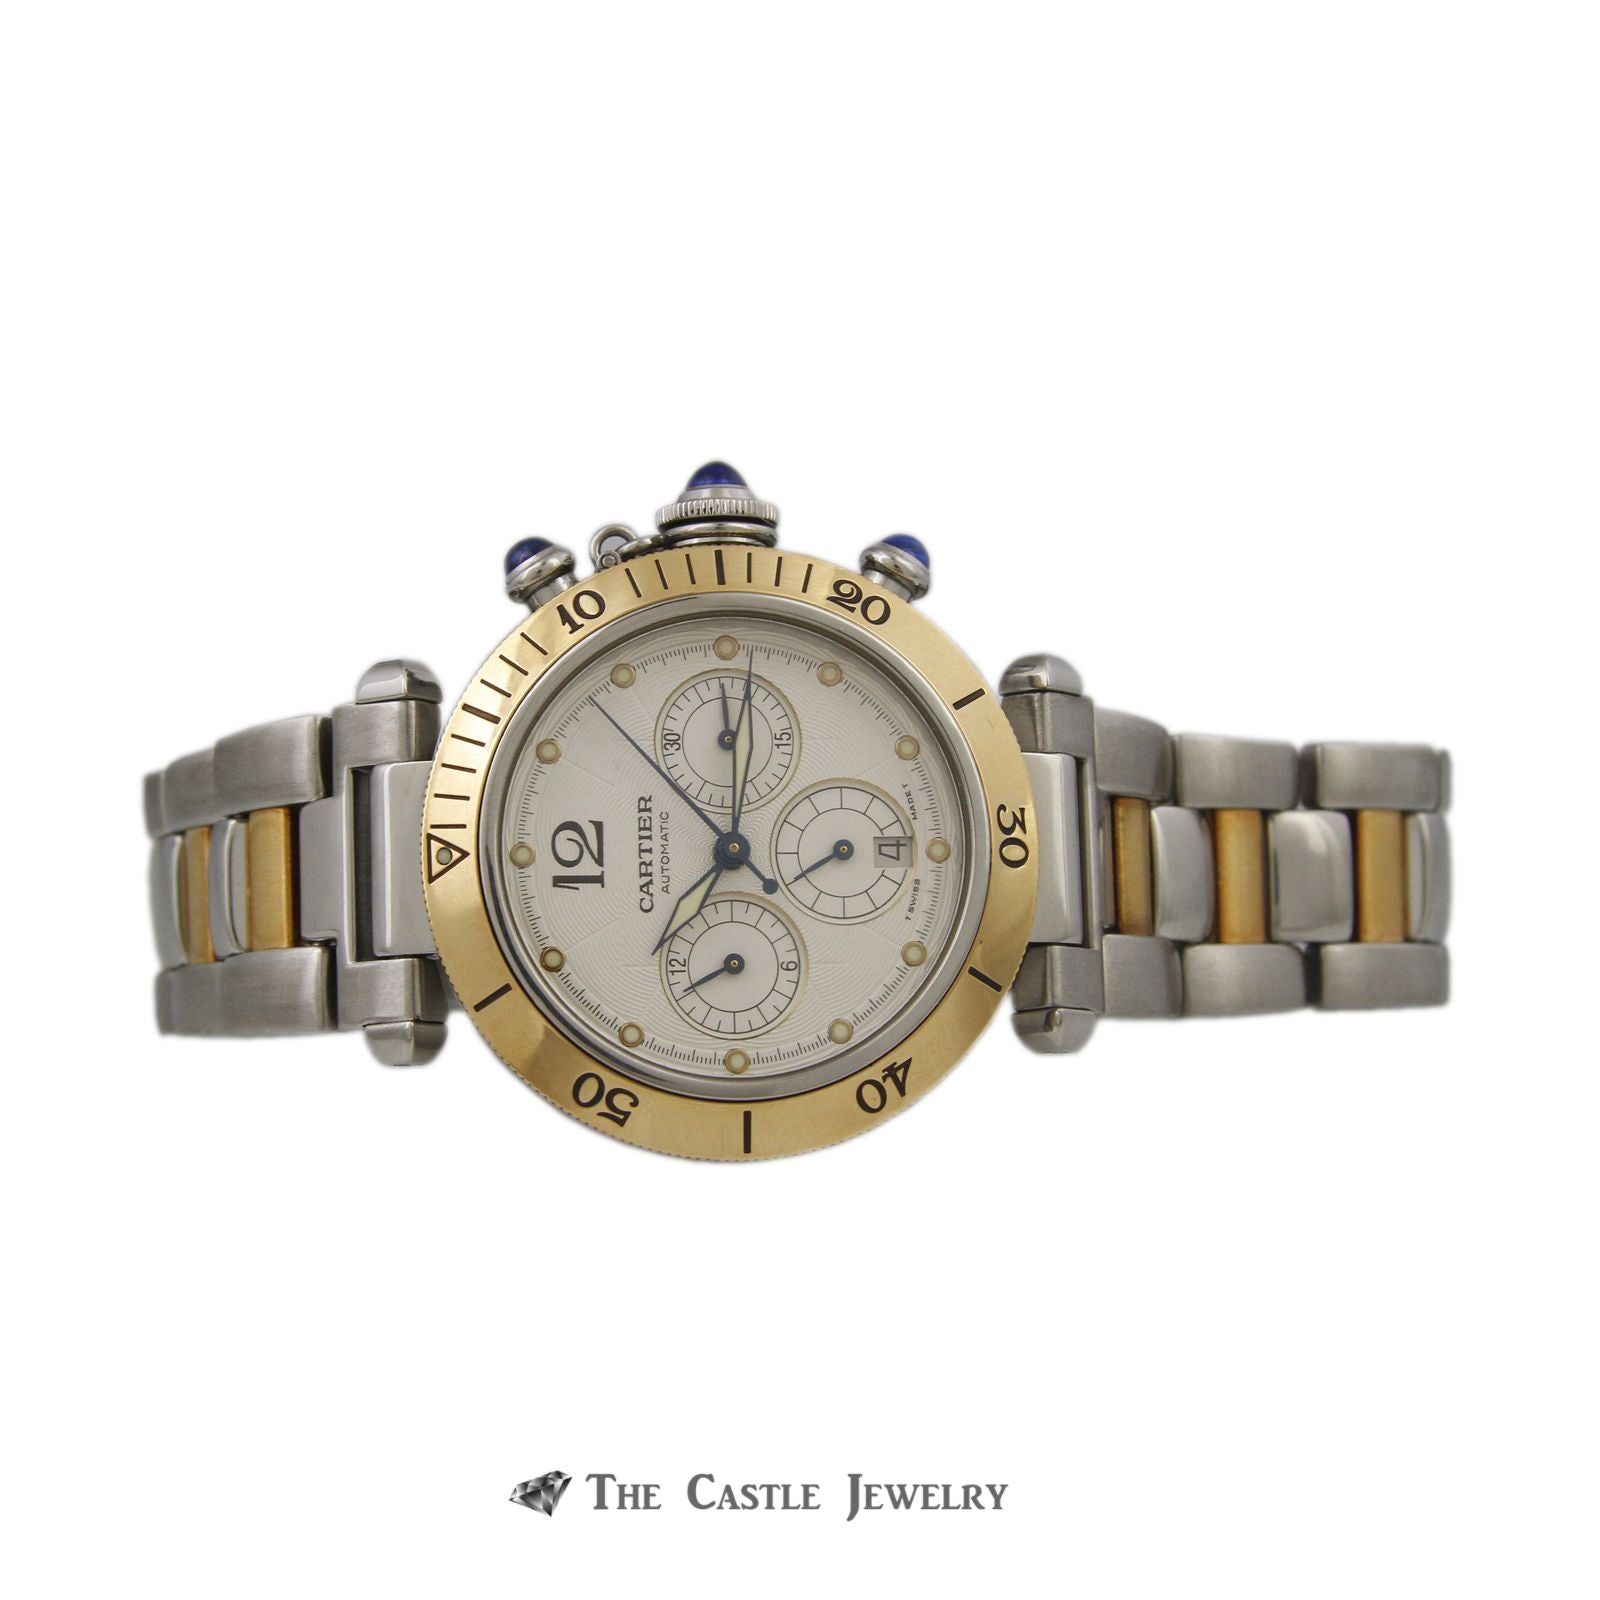 Cartier Pasha de Cartier Watch 18K & Steel 38mm Chronograph Ref. 2113-4